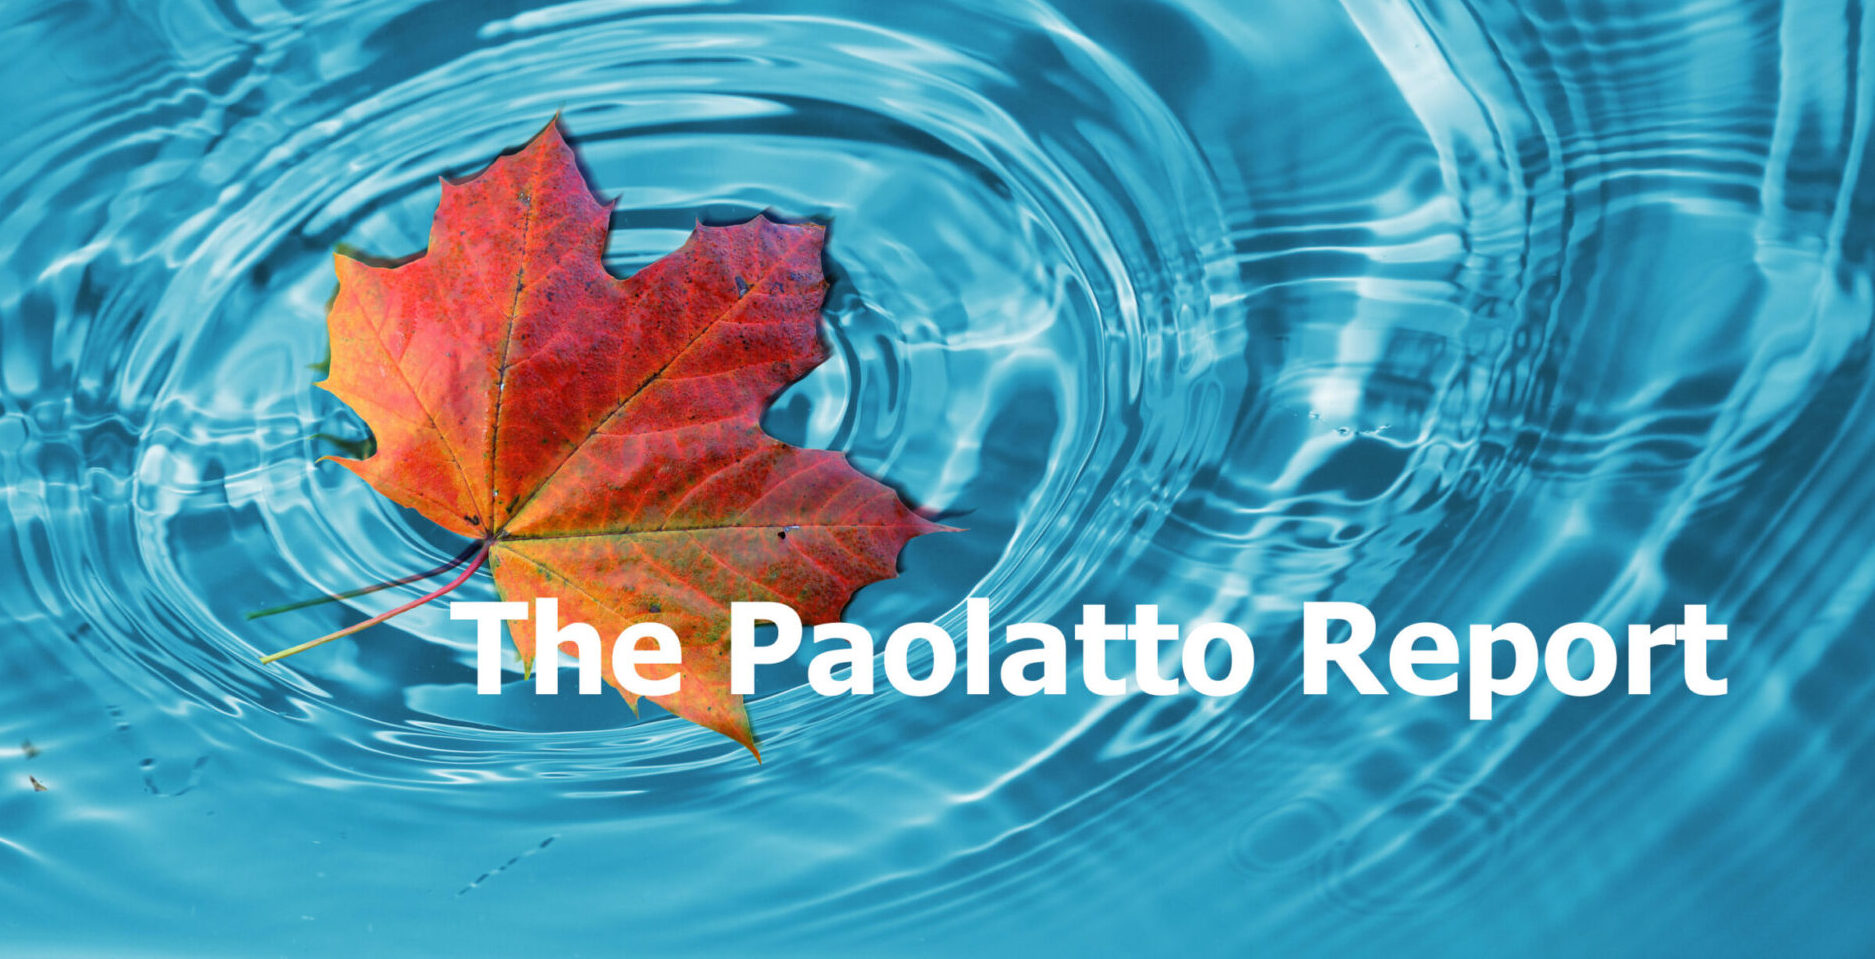 The Paolatto Report